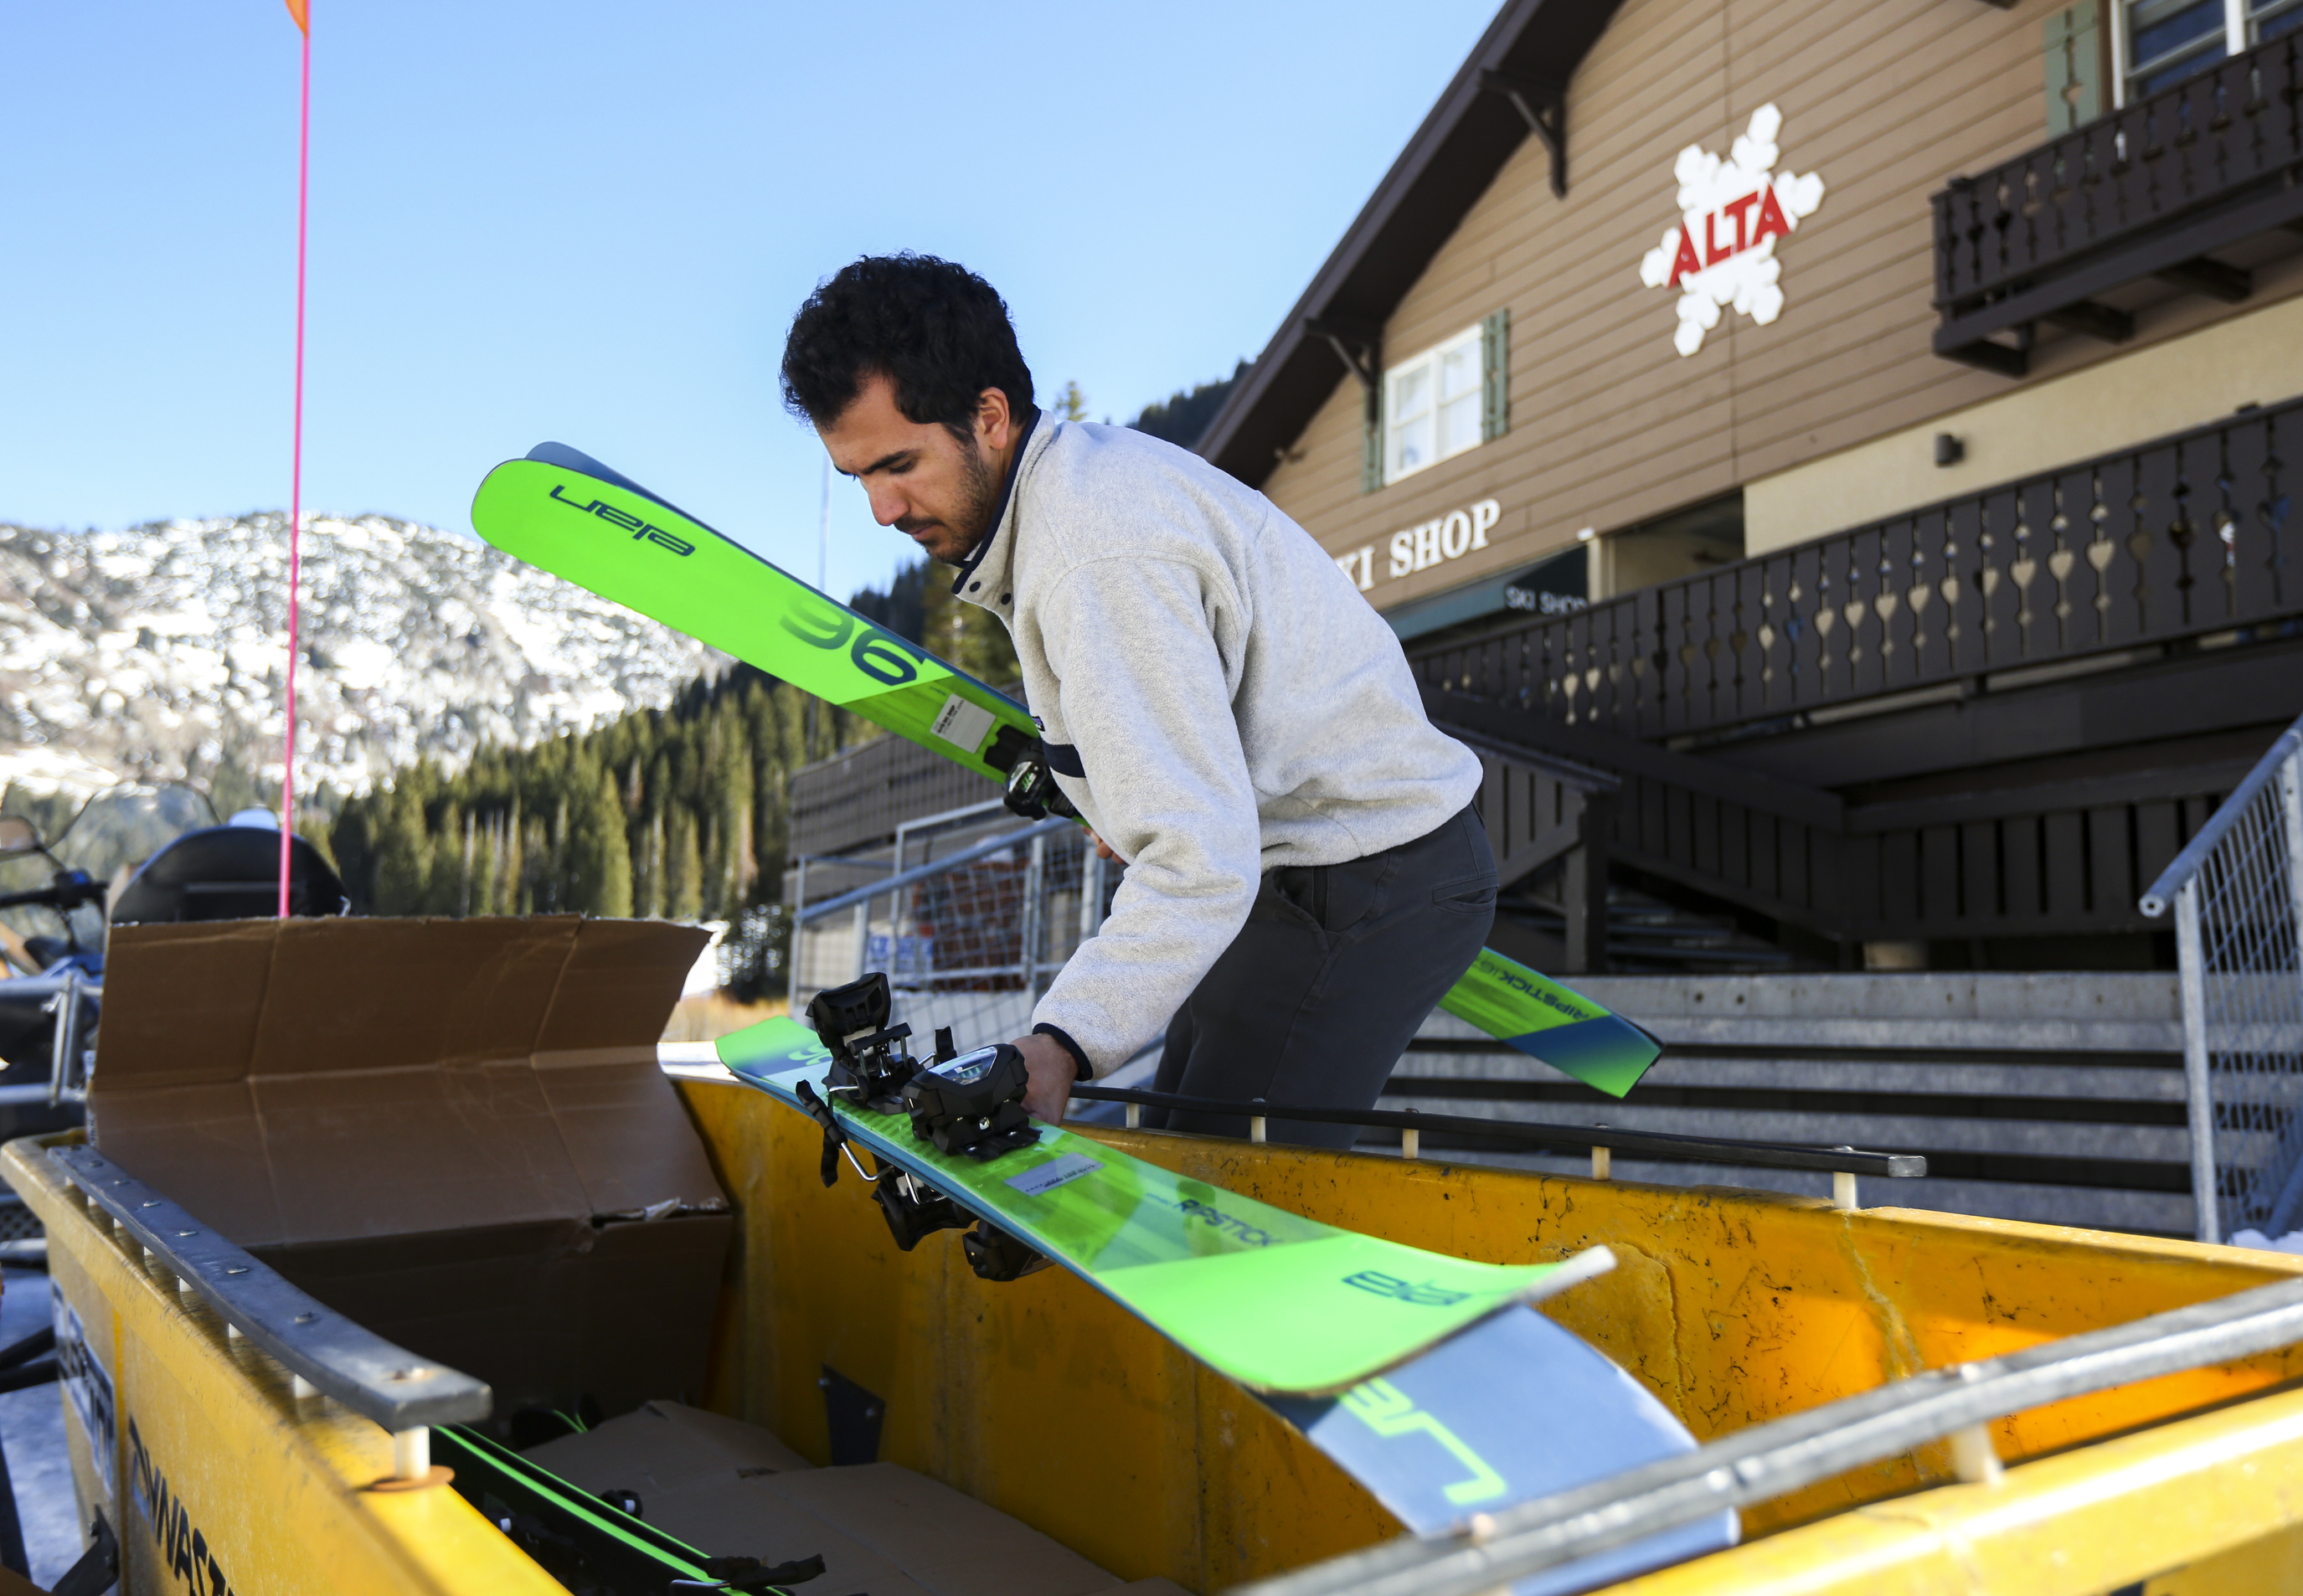 Fayik Abdi unloads pairs of skis from a bin as he and another worker transfer items between Alta rental shops in preparation for the ski season at Alta Ski Resort in Little Cottonwood Canyon on Monday, Nov. 11, 2019. This is Abdi's first day working for Alta after two seasons working for Snowbird just down the canyon.